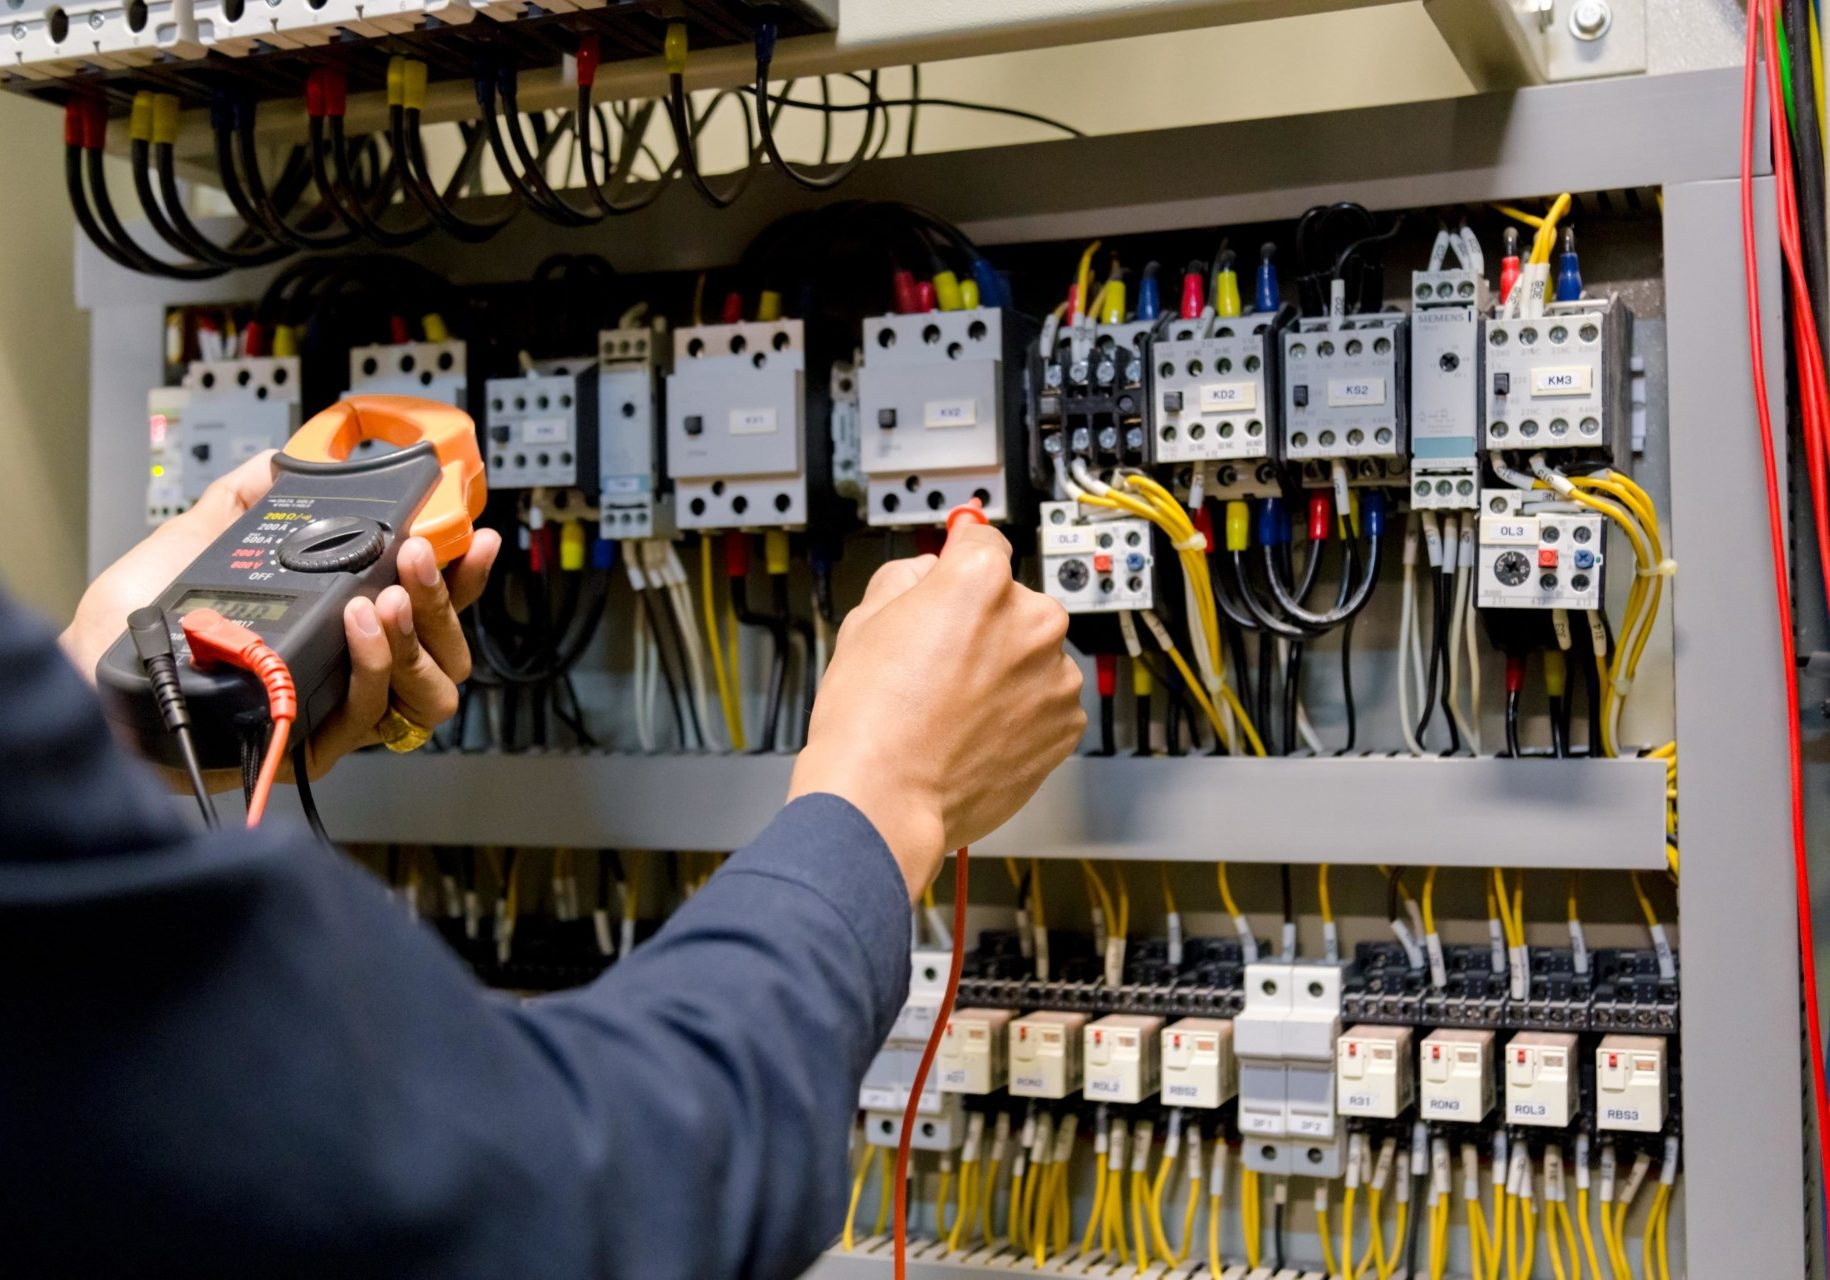 electrician-engineer-work-tester-measuring-voltage-and-current-of-power-electric-line-in-electical-cabinet-control-min